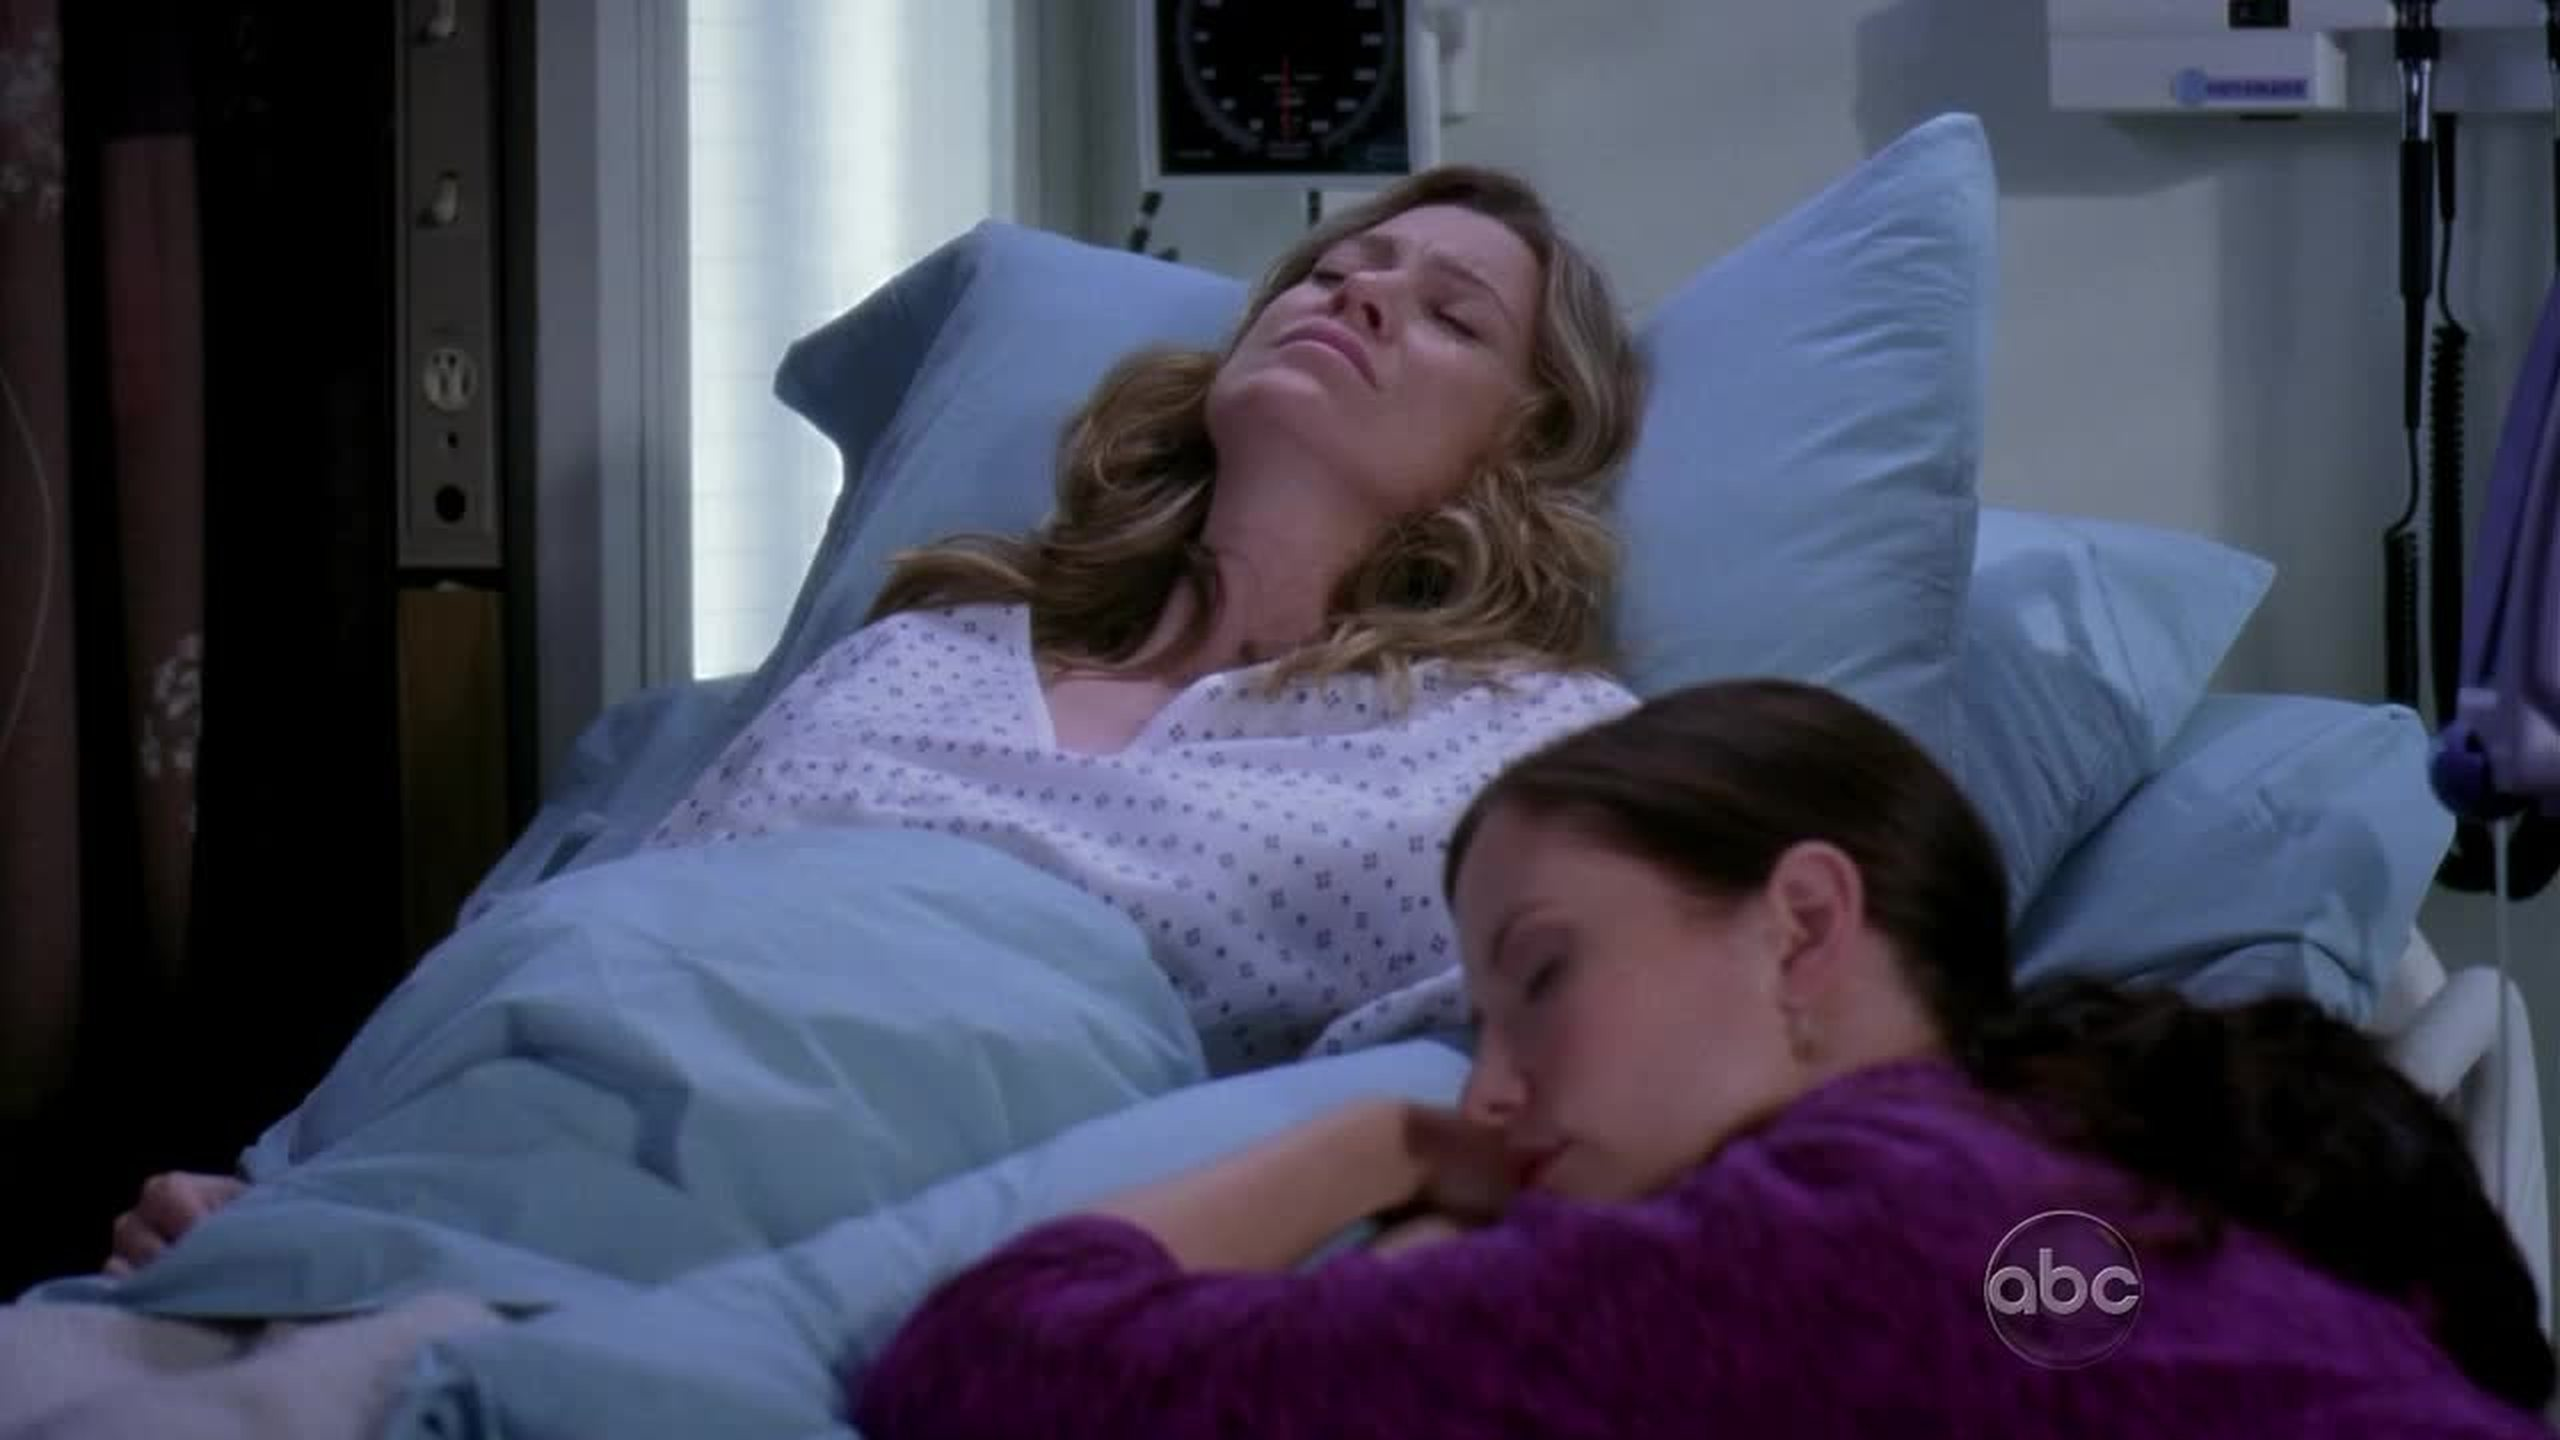 i'm loving the relationship between meredith and lexie <3